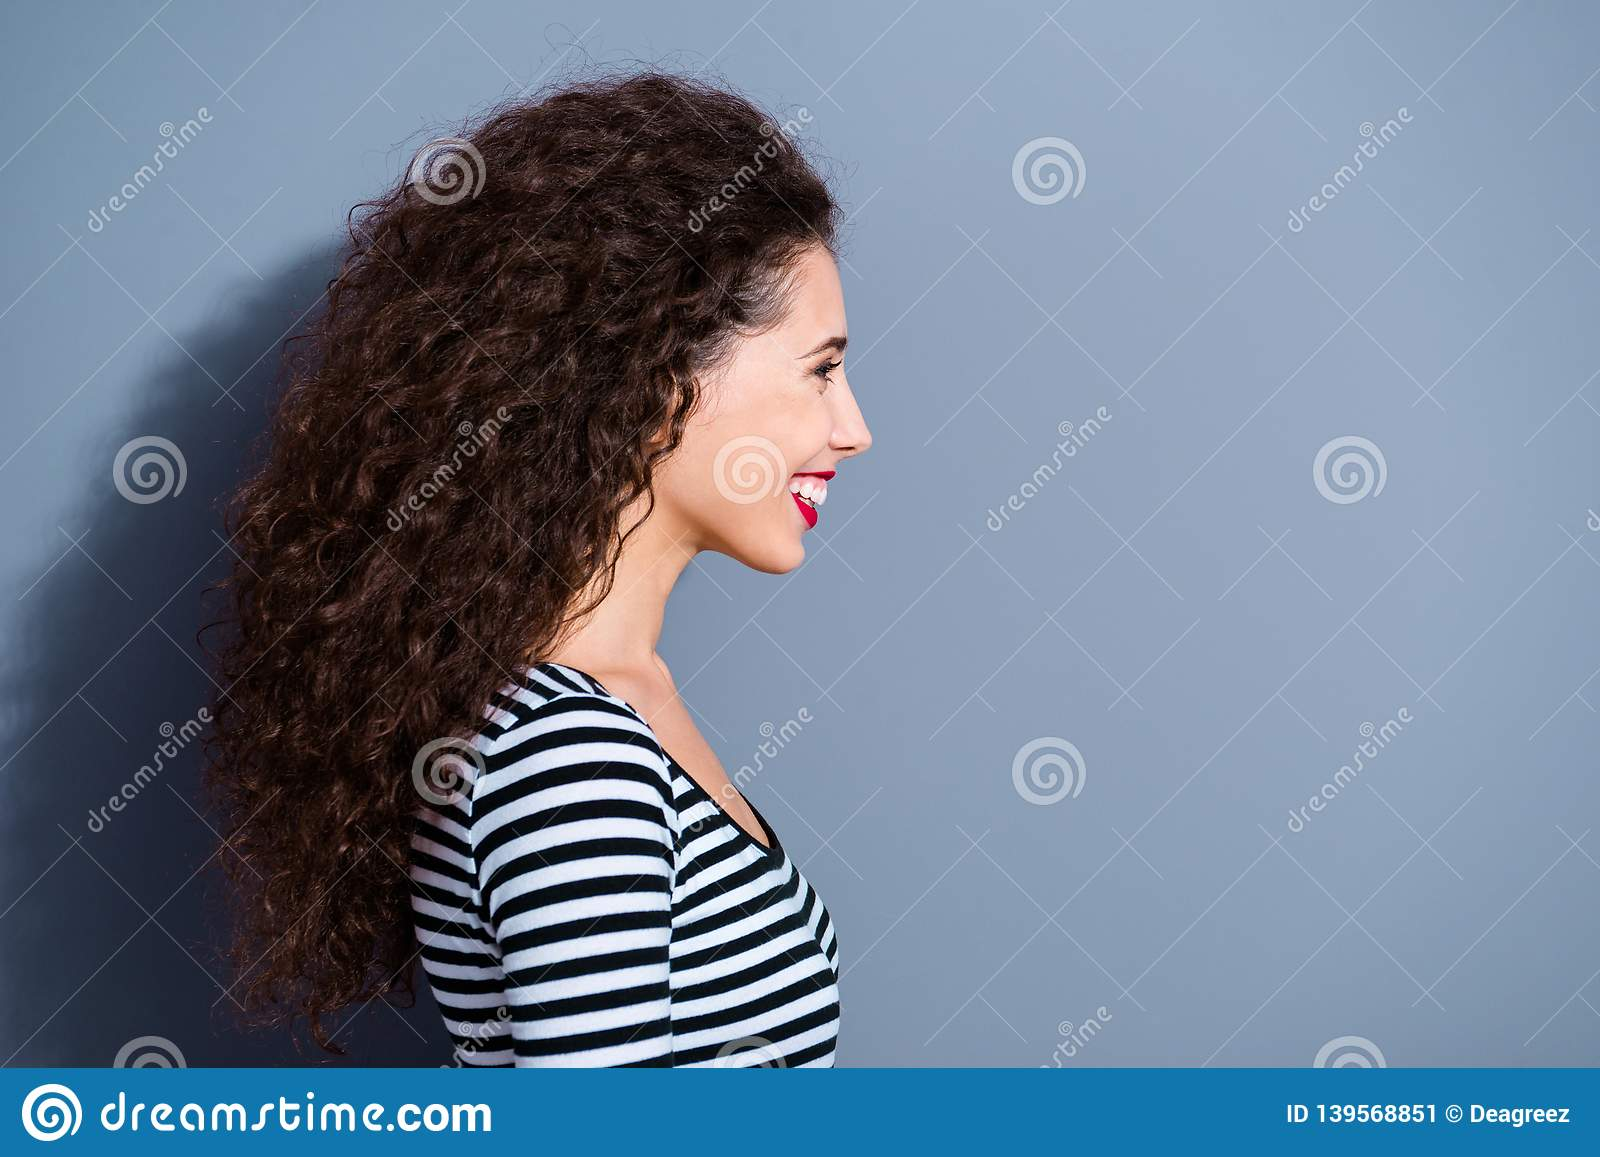 Half-turned close up photo portrait of pretty attractive sweet lovely dreamy adorable charming cute lady looking aside